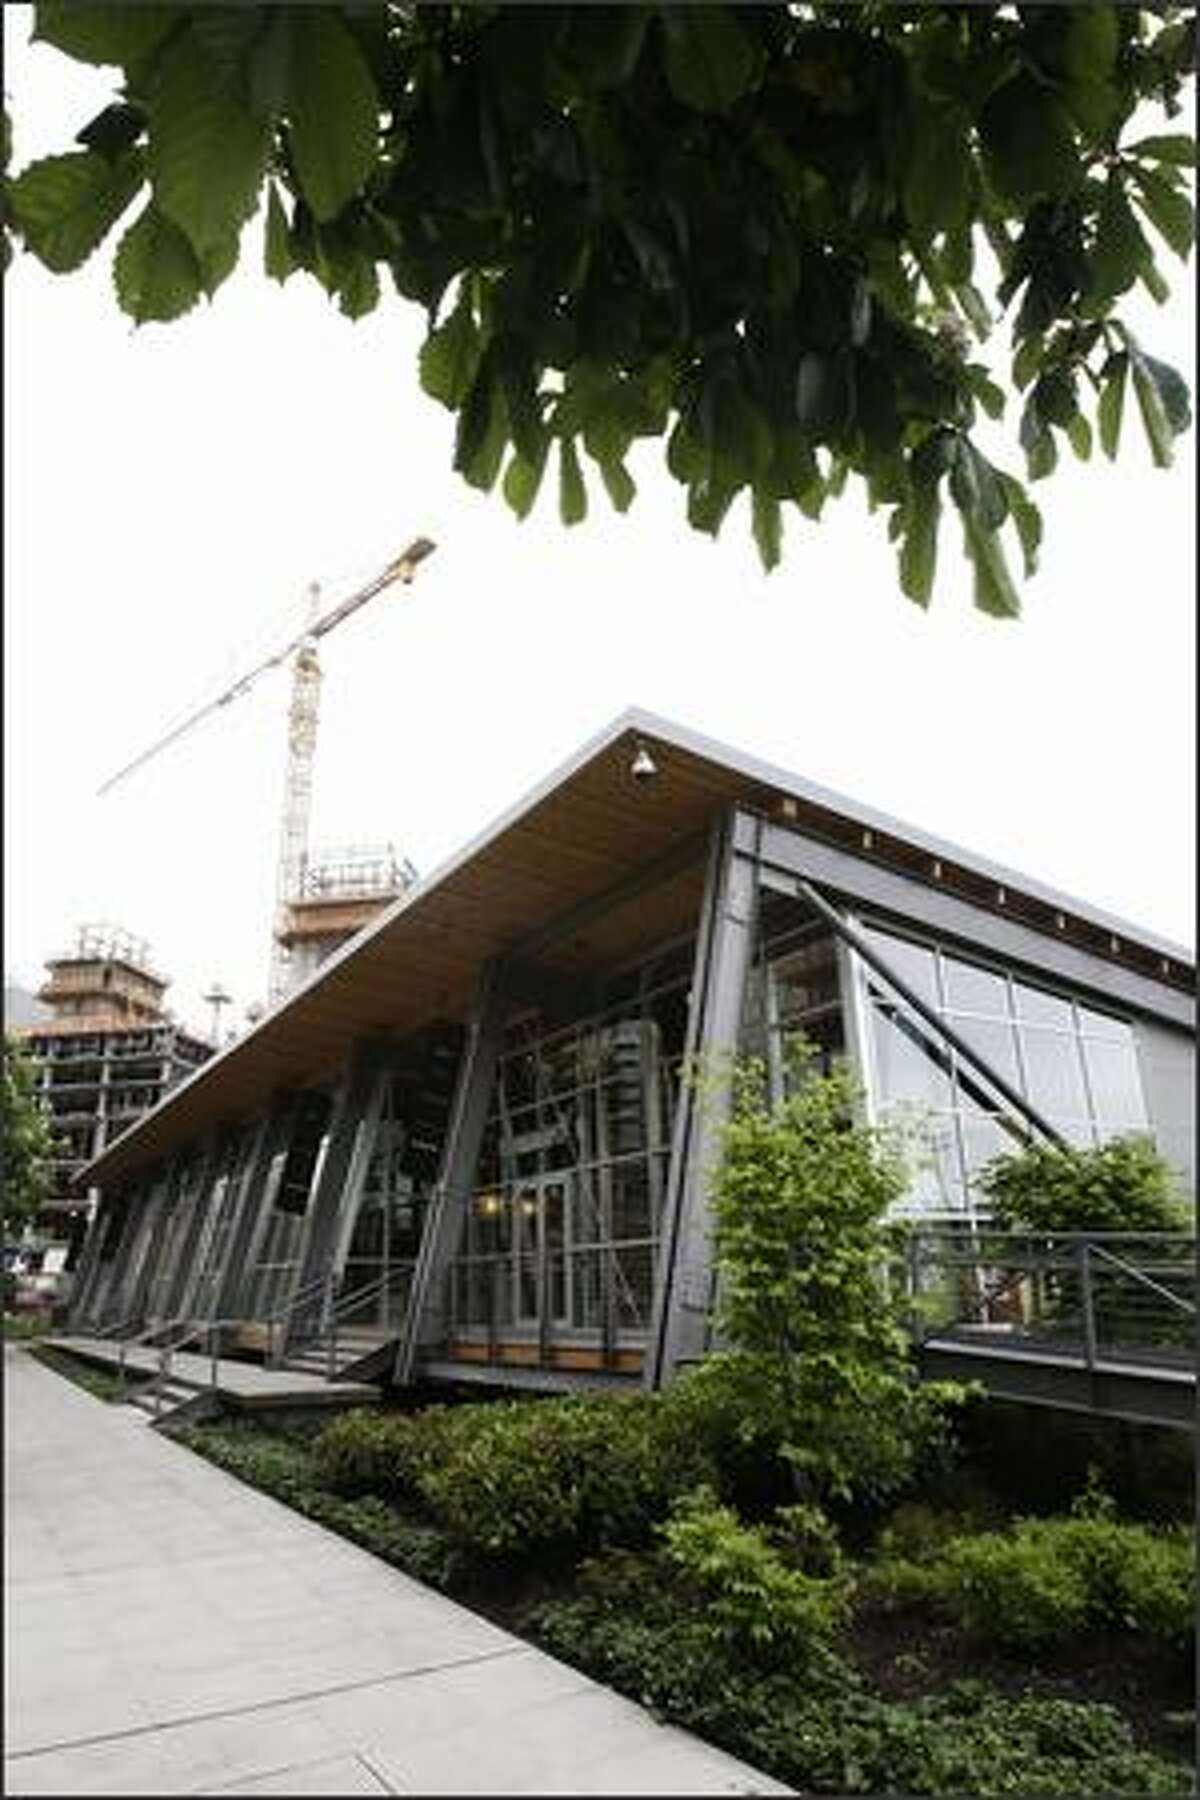 The South Lake Union Discovery Center is a sleek shed designed to be unbolted and trucked away.